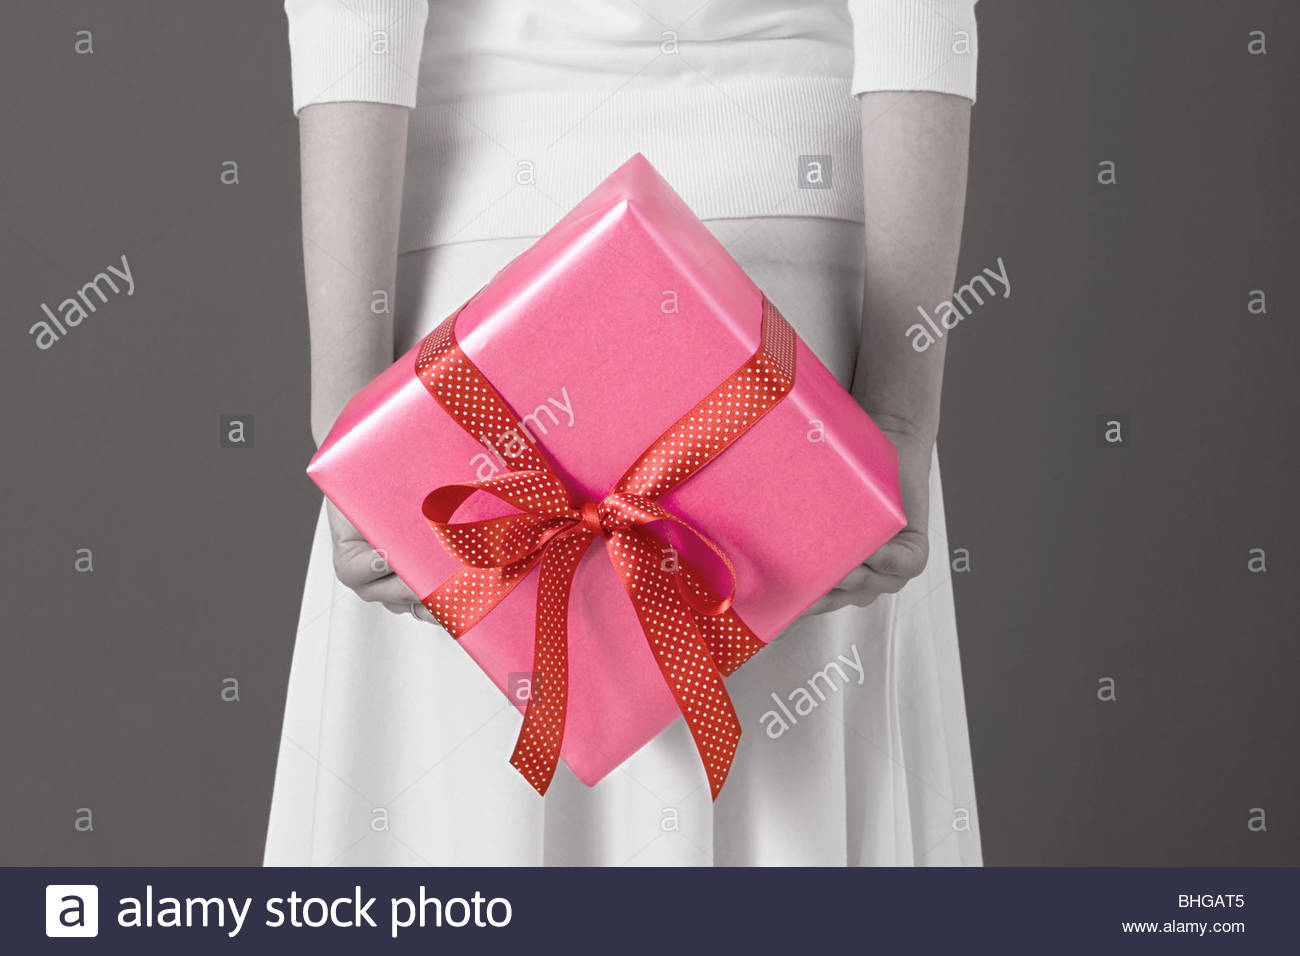 Woman holding a gift - Stock Image